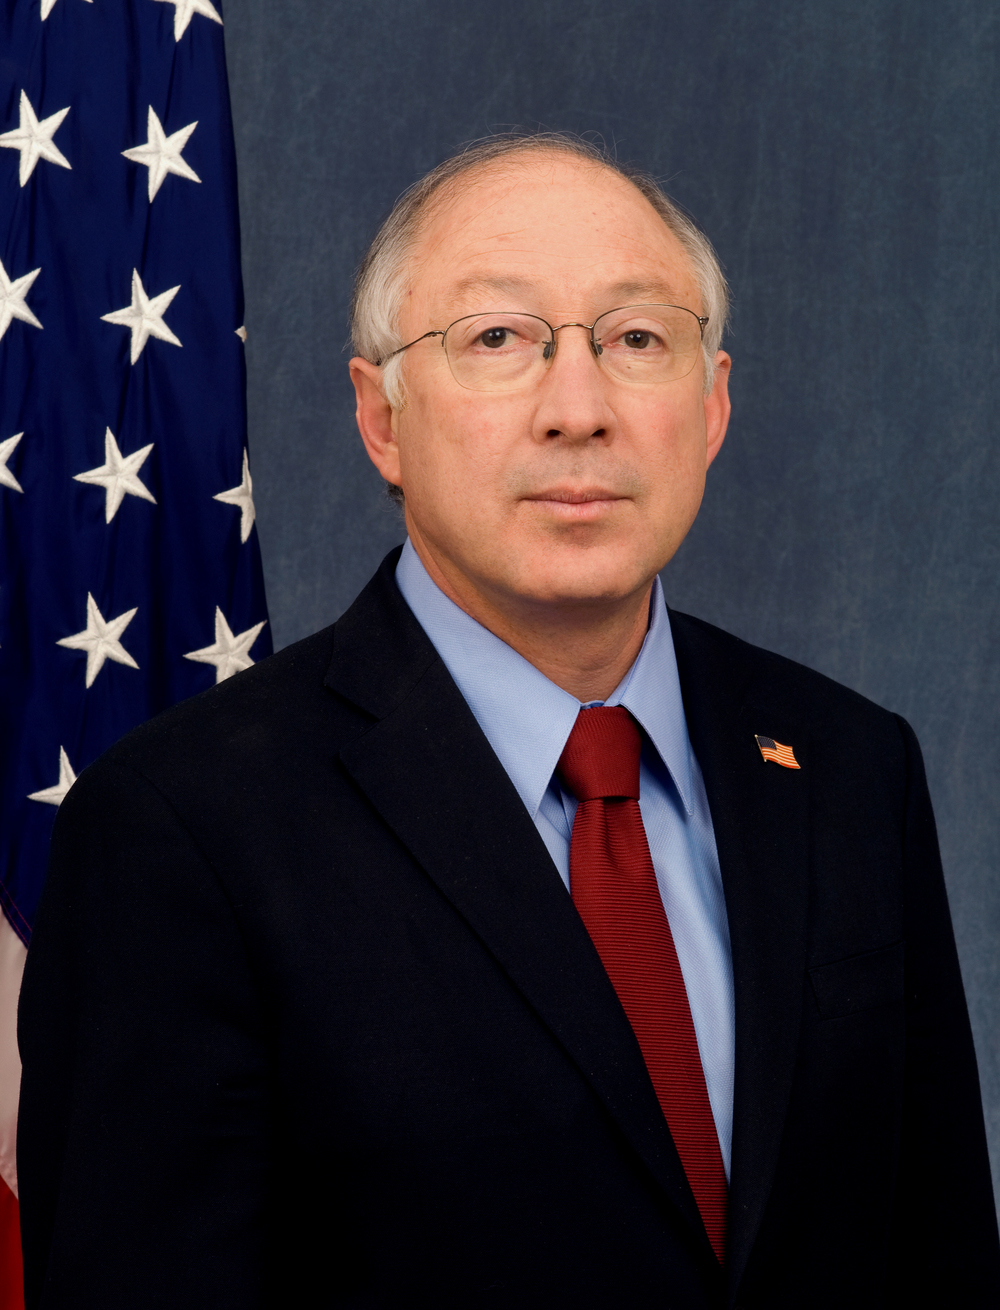 Ken_Salazar_official_DOI_portrait.jpg